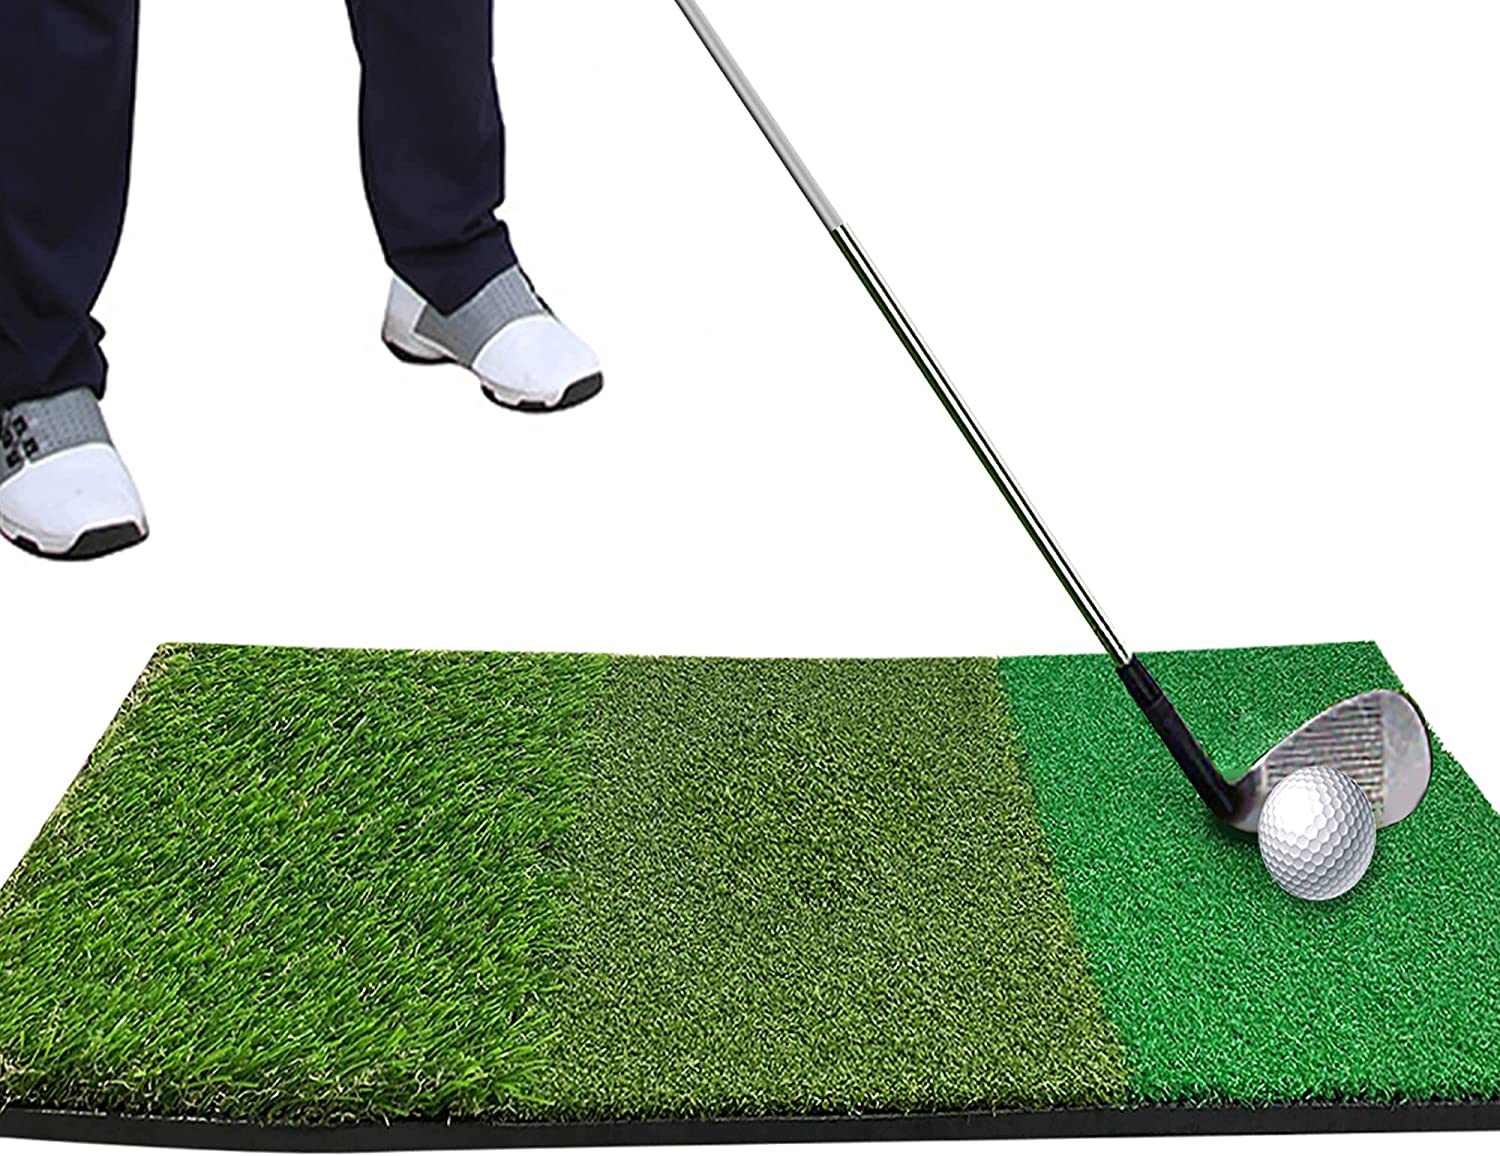 Dealing Max 56% OFF full price reduction PGM Golf Mat 12x24in Hitting Synthetic Premium Gol Turf